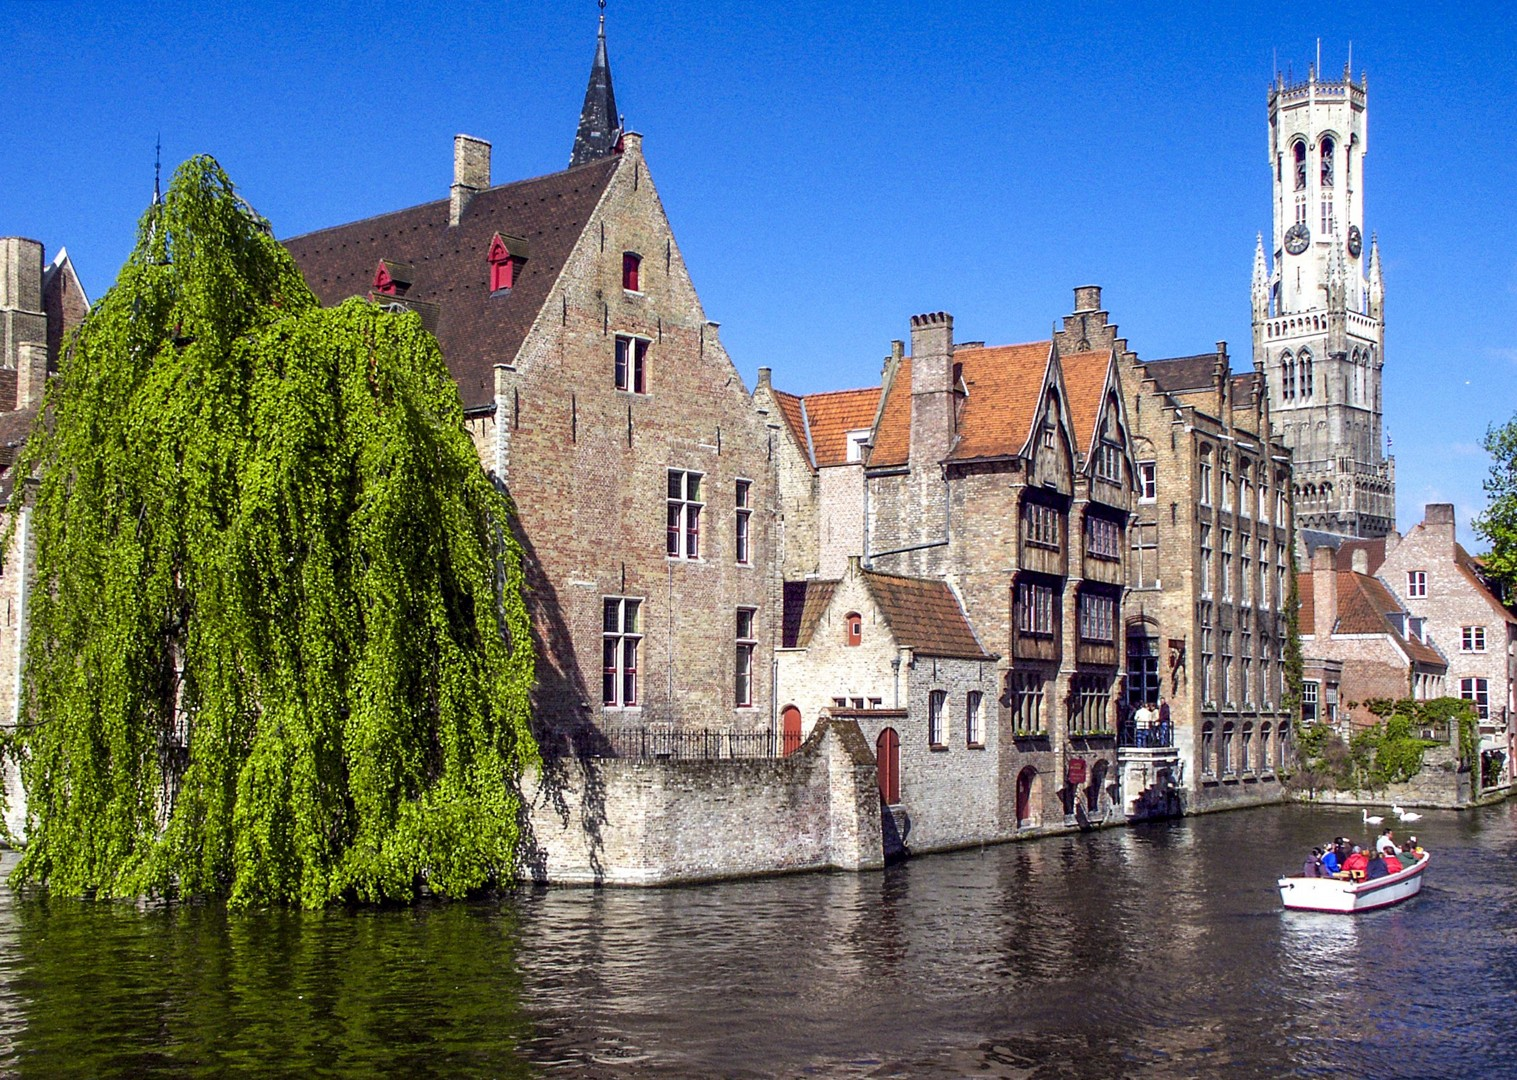 bruges-canals-bike-and-boat-amsterdam-skedaddle-comfortable-accommodation.jpg - Holland and Belgium - Bruges to Amsterdam - Premium Bike and Barge Holiday - Leisure Cycling